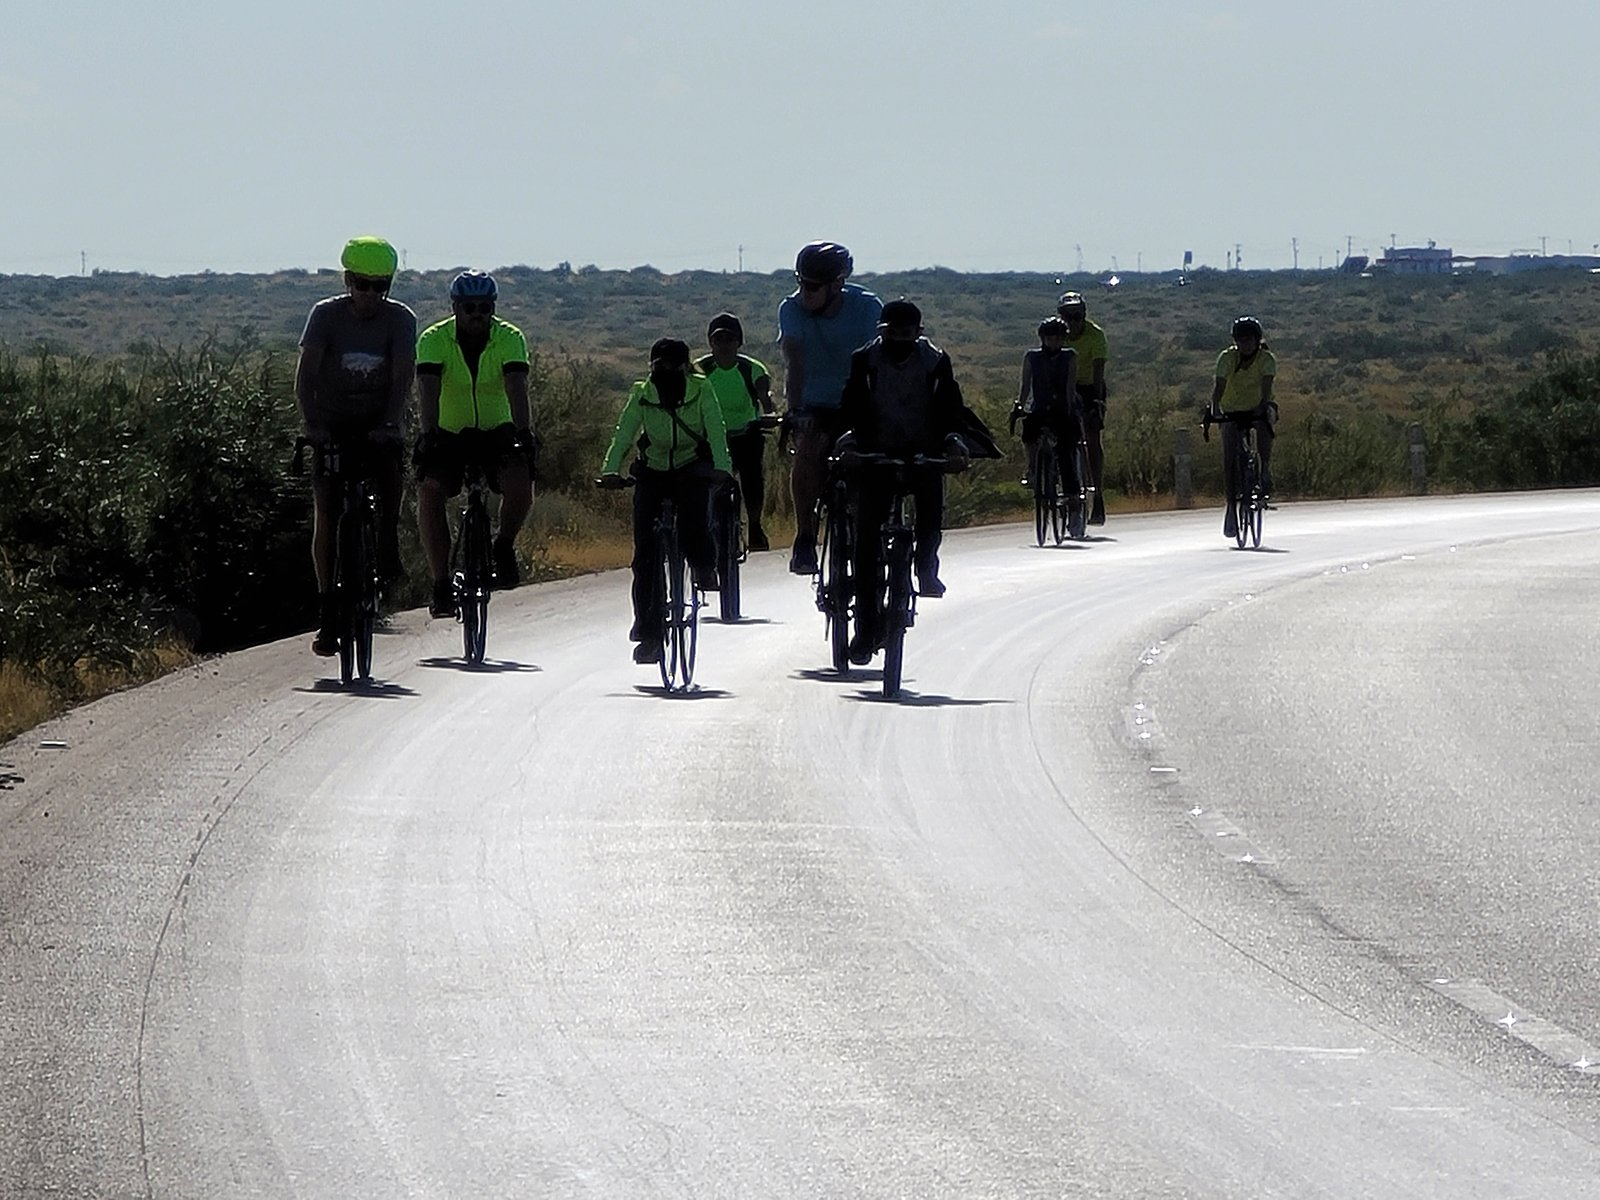 We The People Ride participants bike nar the U.S.-Mexico border. Photo courtesy of Vote Common Good